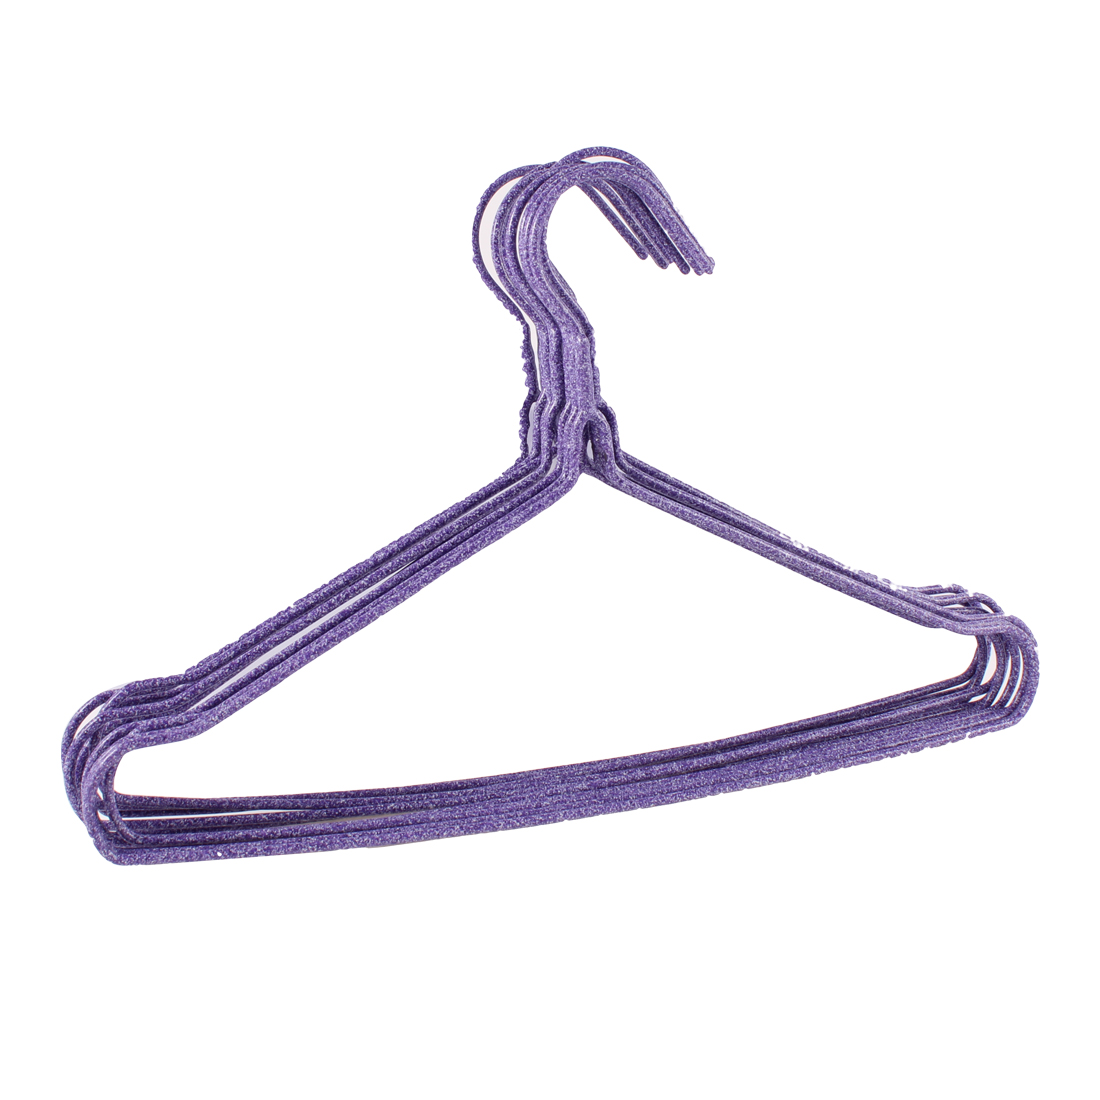 10 Pcs 11.4inches Purple Plastic Metal Clothes Hanger for Kids